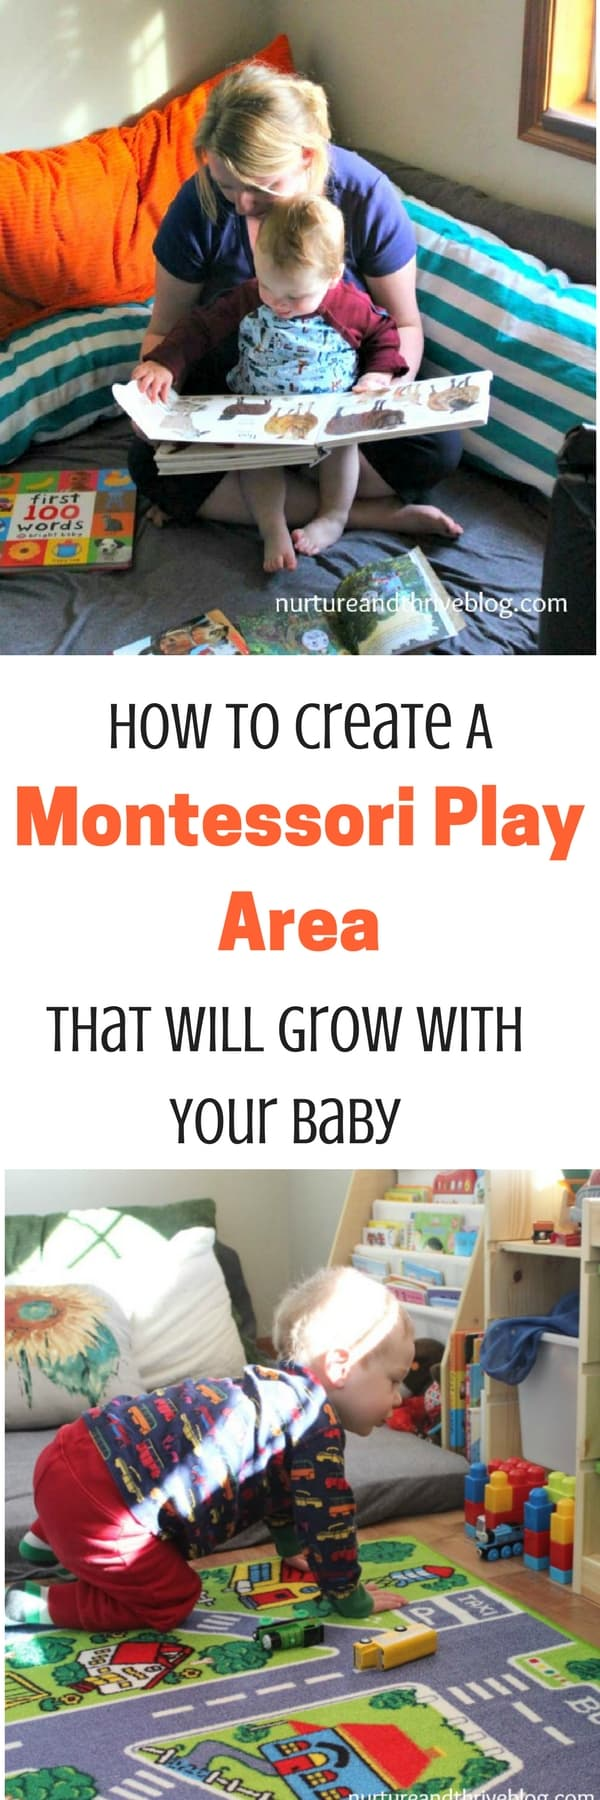 Trofast Montessori How To Create A Montessori Playroom For Your Baby And Toddler